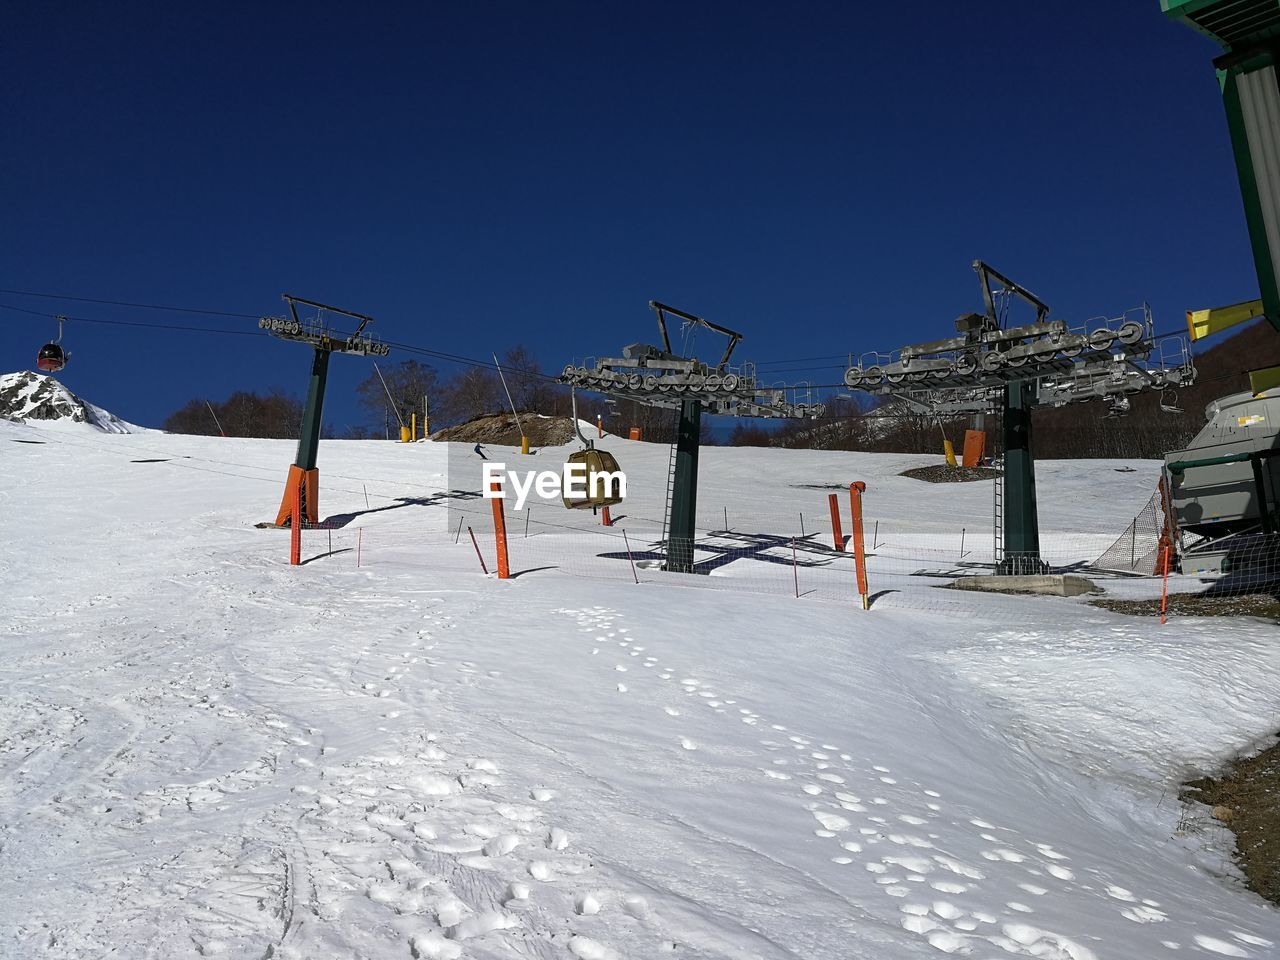 winter, cold temperature, snow, sky, nature, clear sky, day, sport, land, blue, sunlight, white color, frozen, field, covering, beauty in nature, built structure, architecture, copy space, outdoors, no people, snowcapped mountain, ski resort